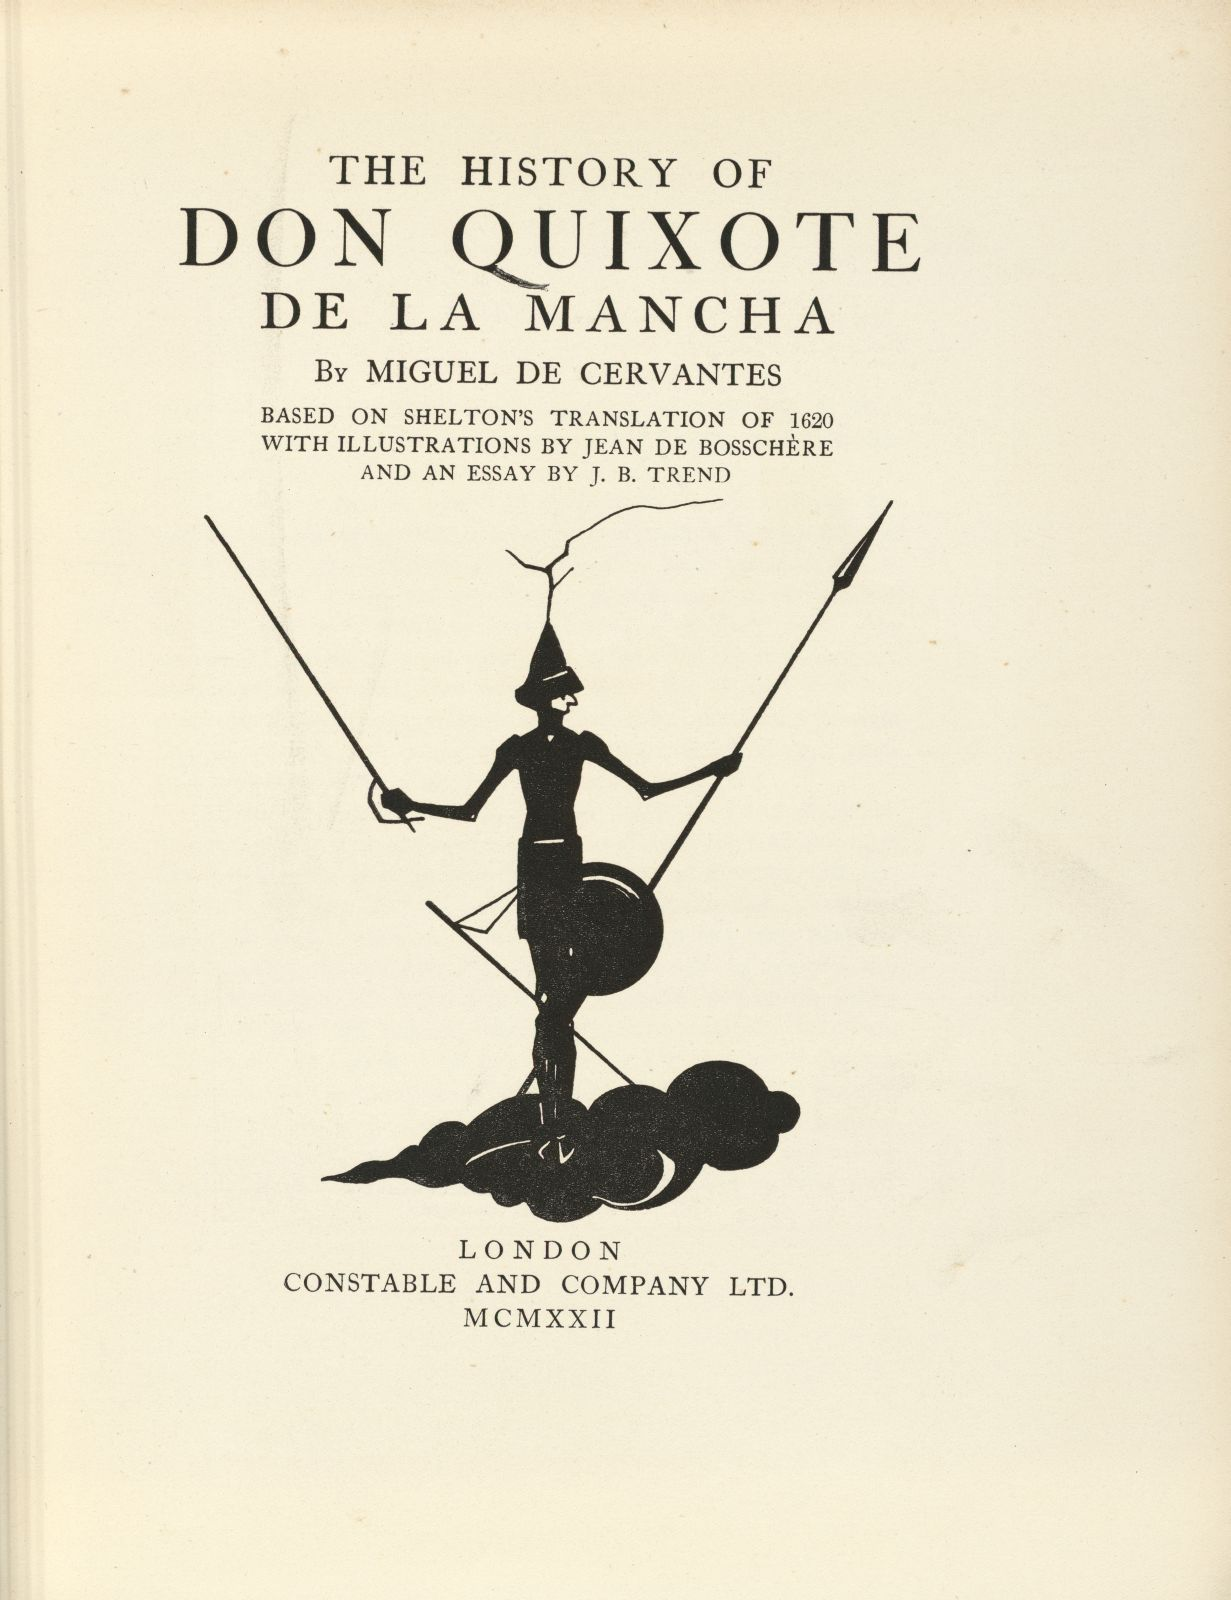 don quijote essay Free essay: cervantes' motivation for writing don quixote miguel de cervantes' greatest literary work, don quixote, maintains an enduring, if somewhat.